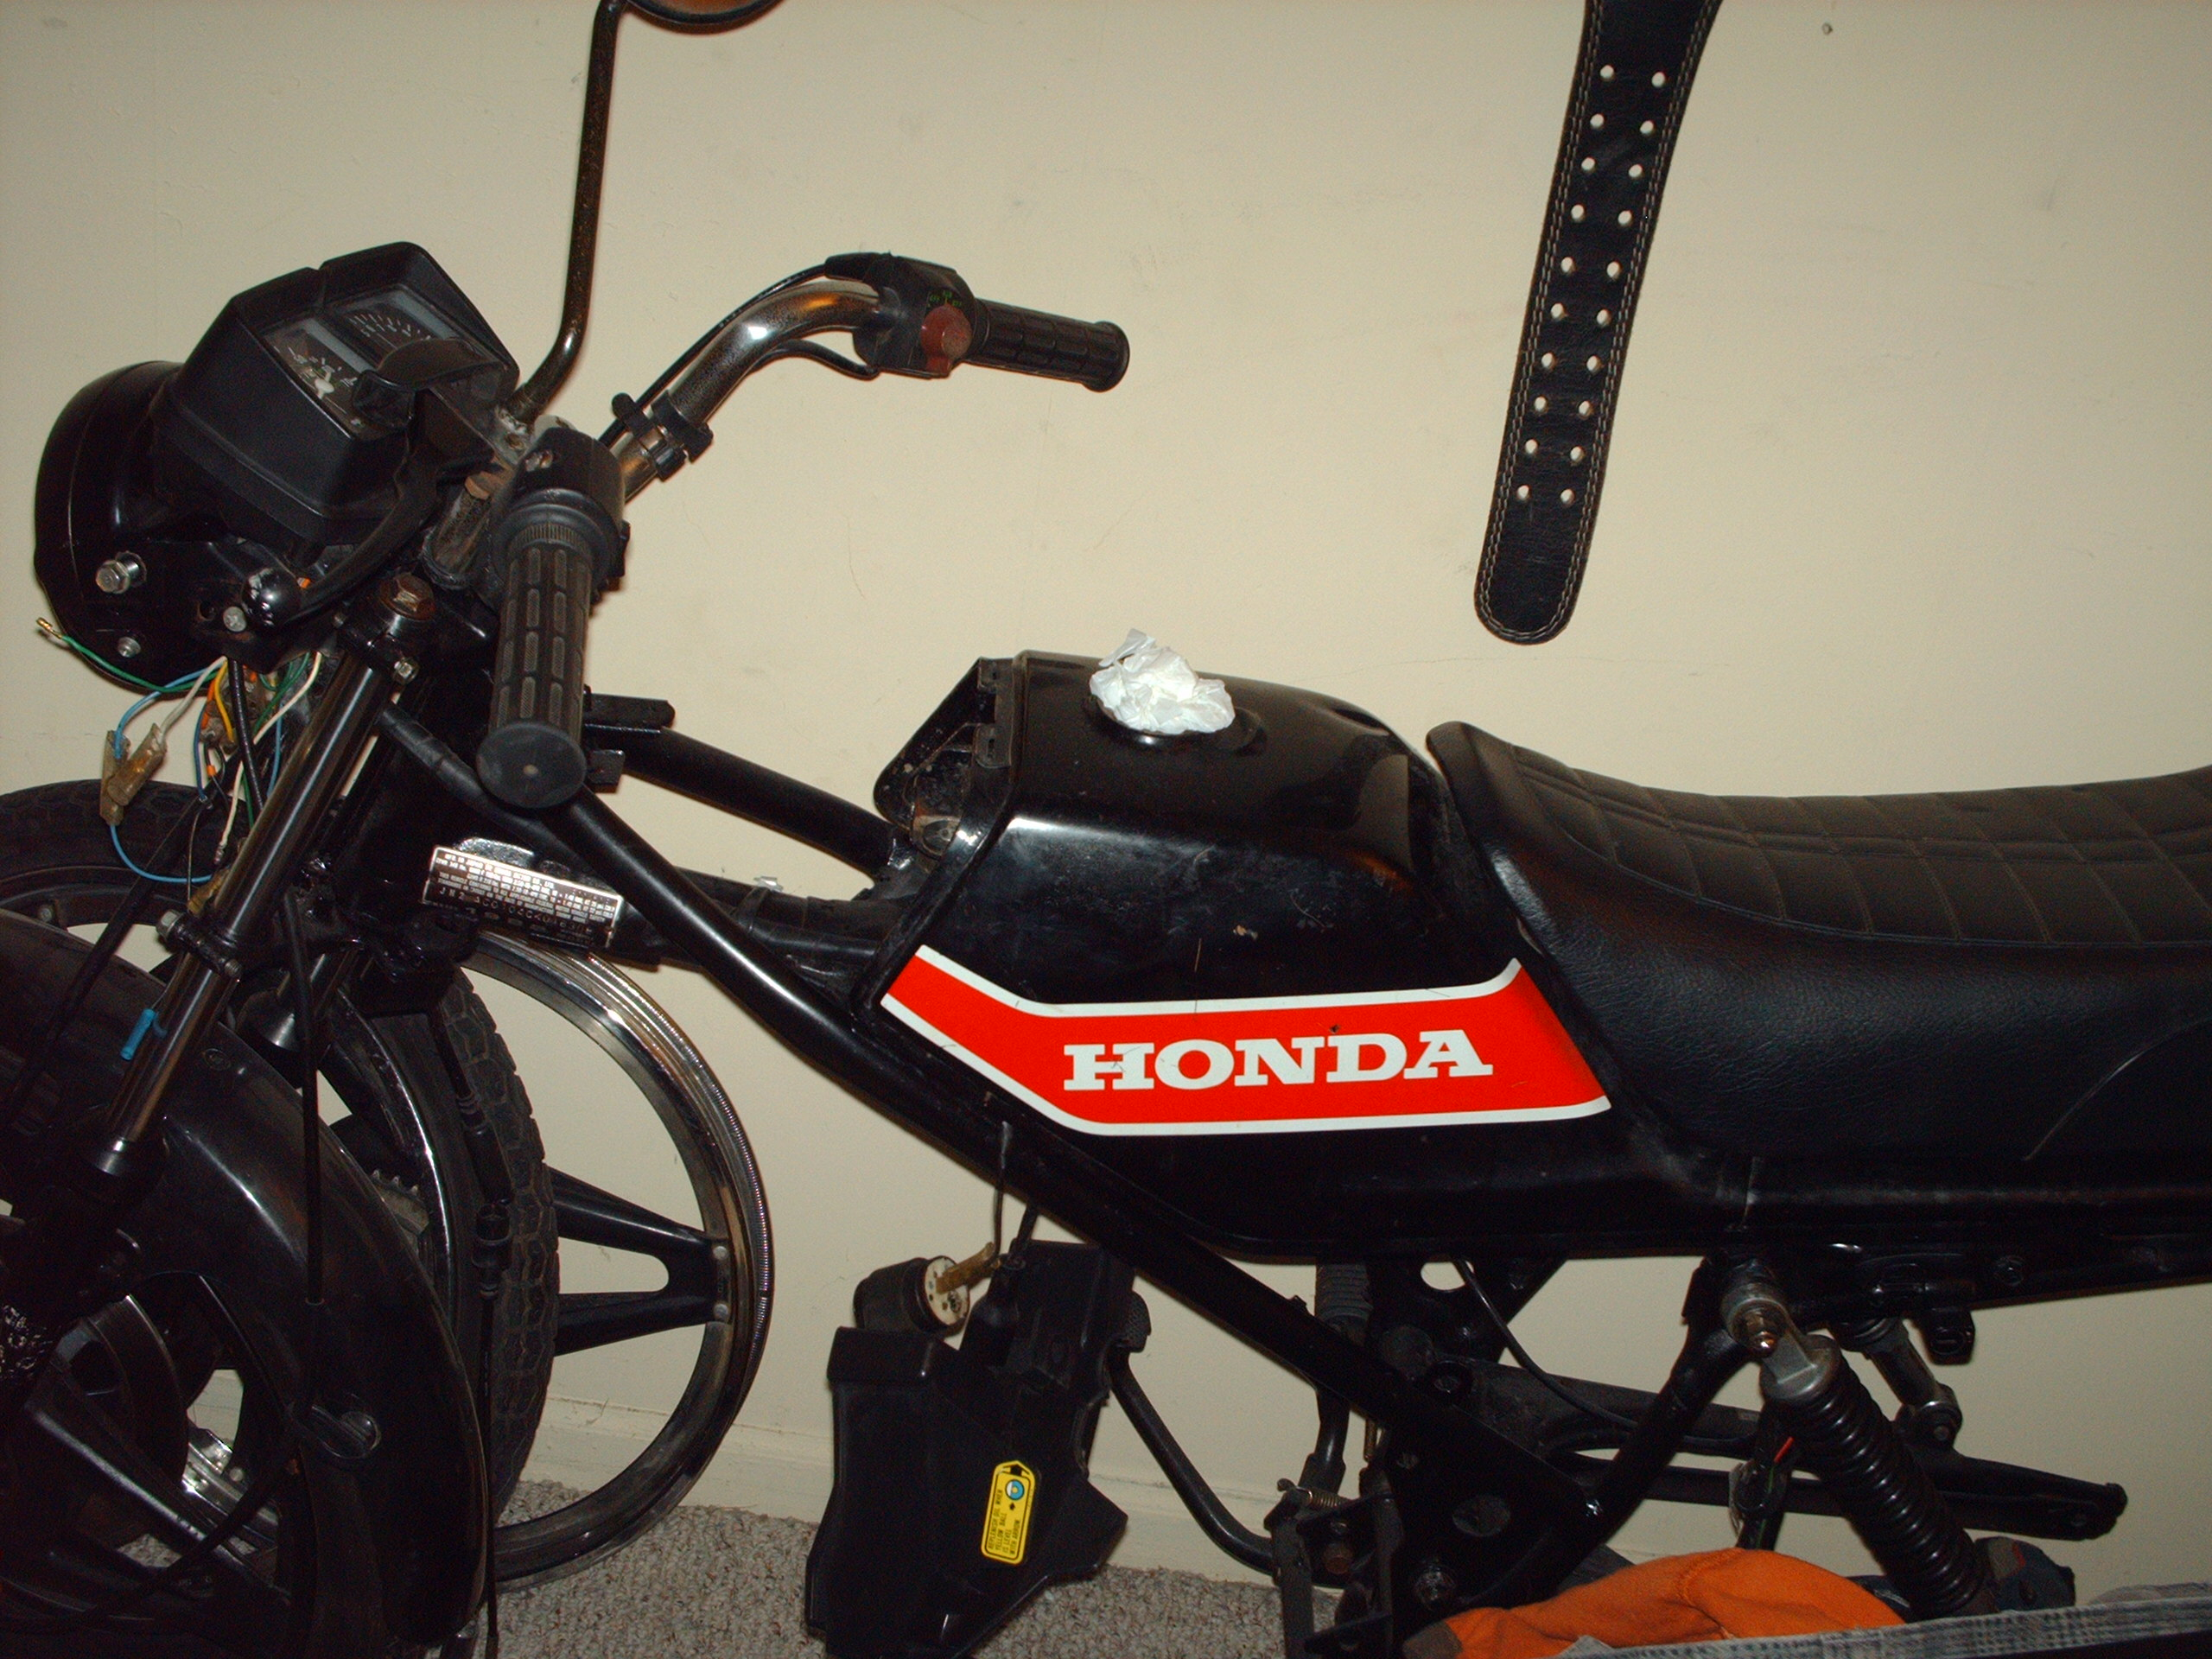 Re honda mb5 project for sale in northern va 350 by for Honda northern virginia